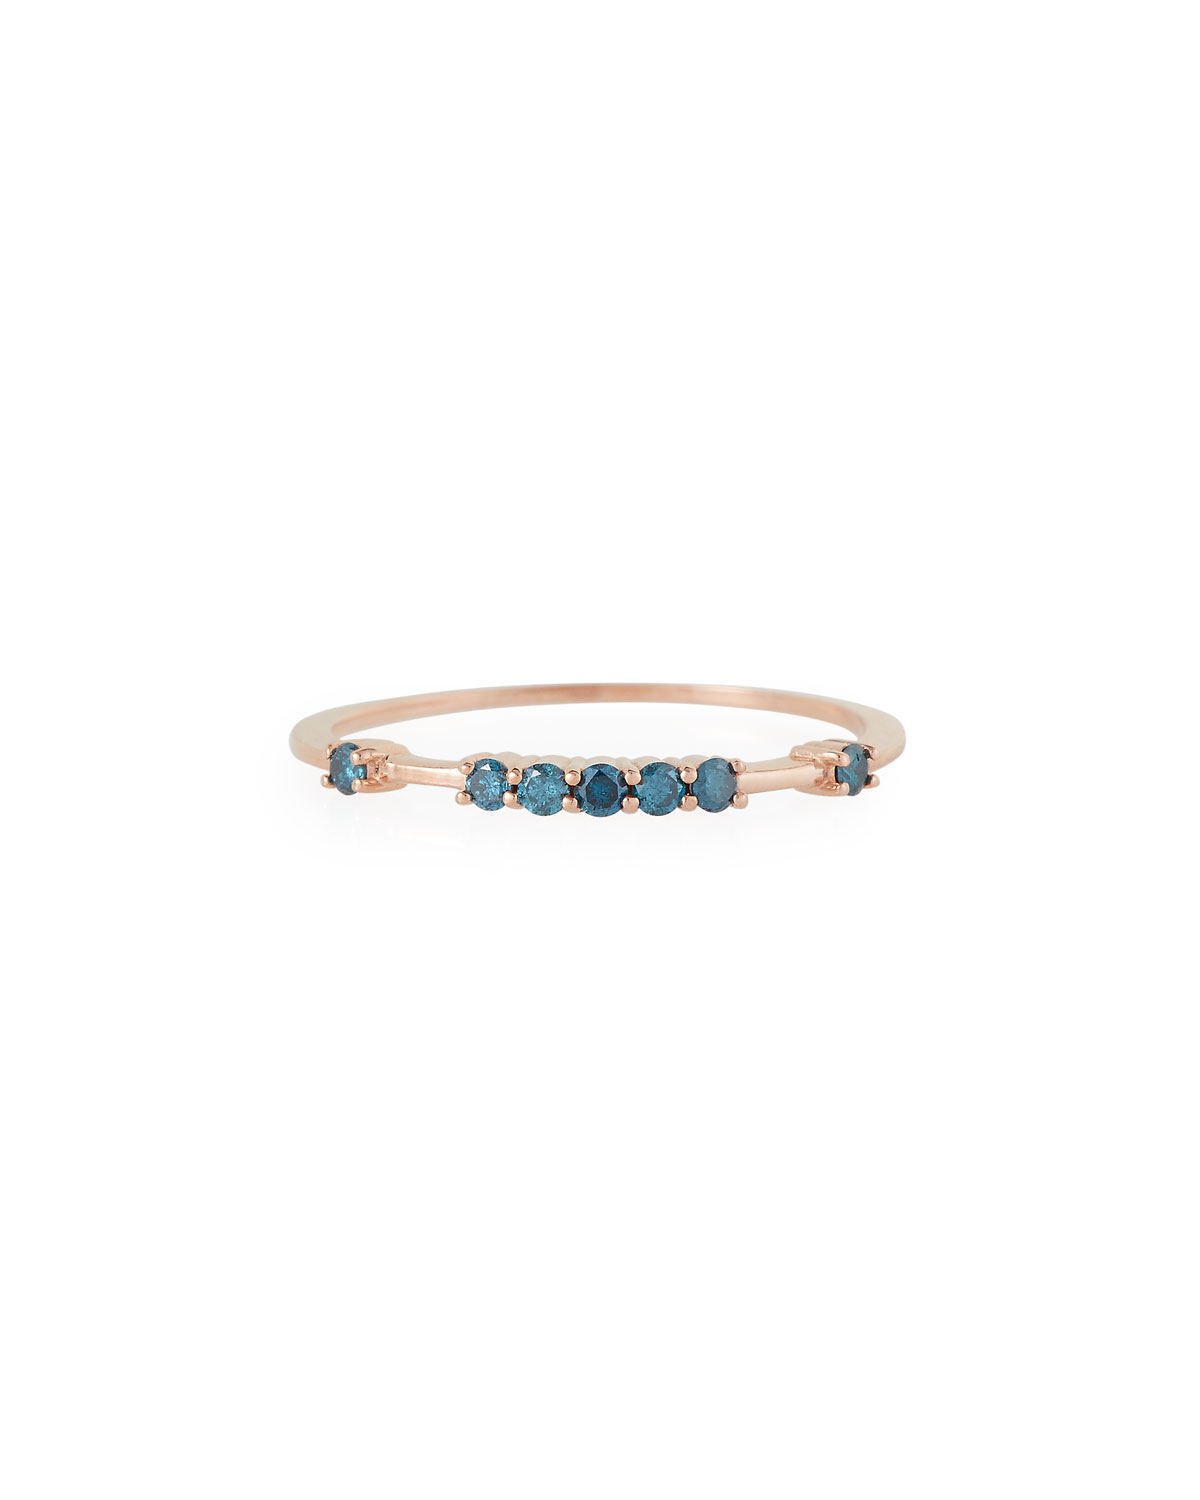 Stevie Wren Misfit 14k Rose Gold Raised Blue Diamond Stacking Band, Size 7